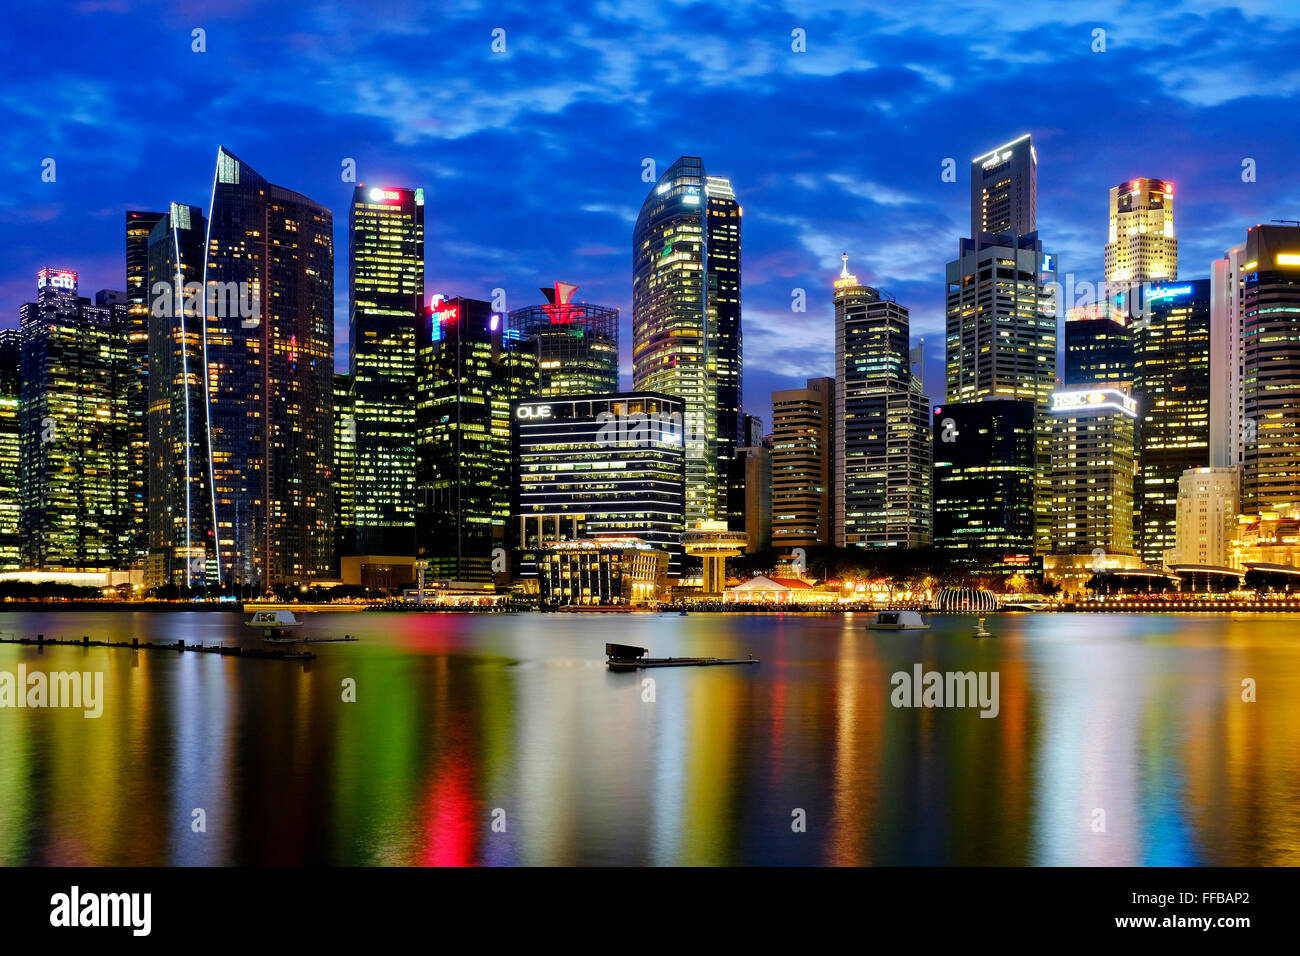 View of downtown core from the Marina Bay, Singapore - Stock Image